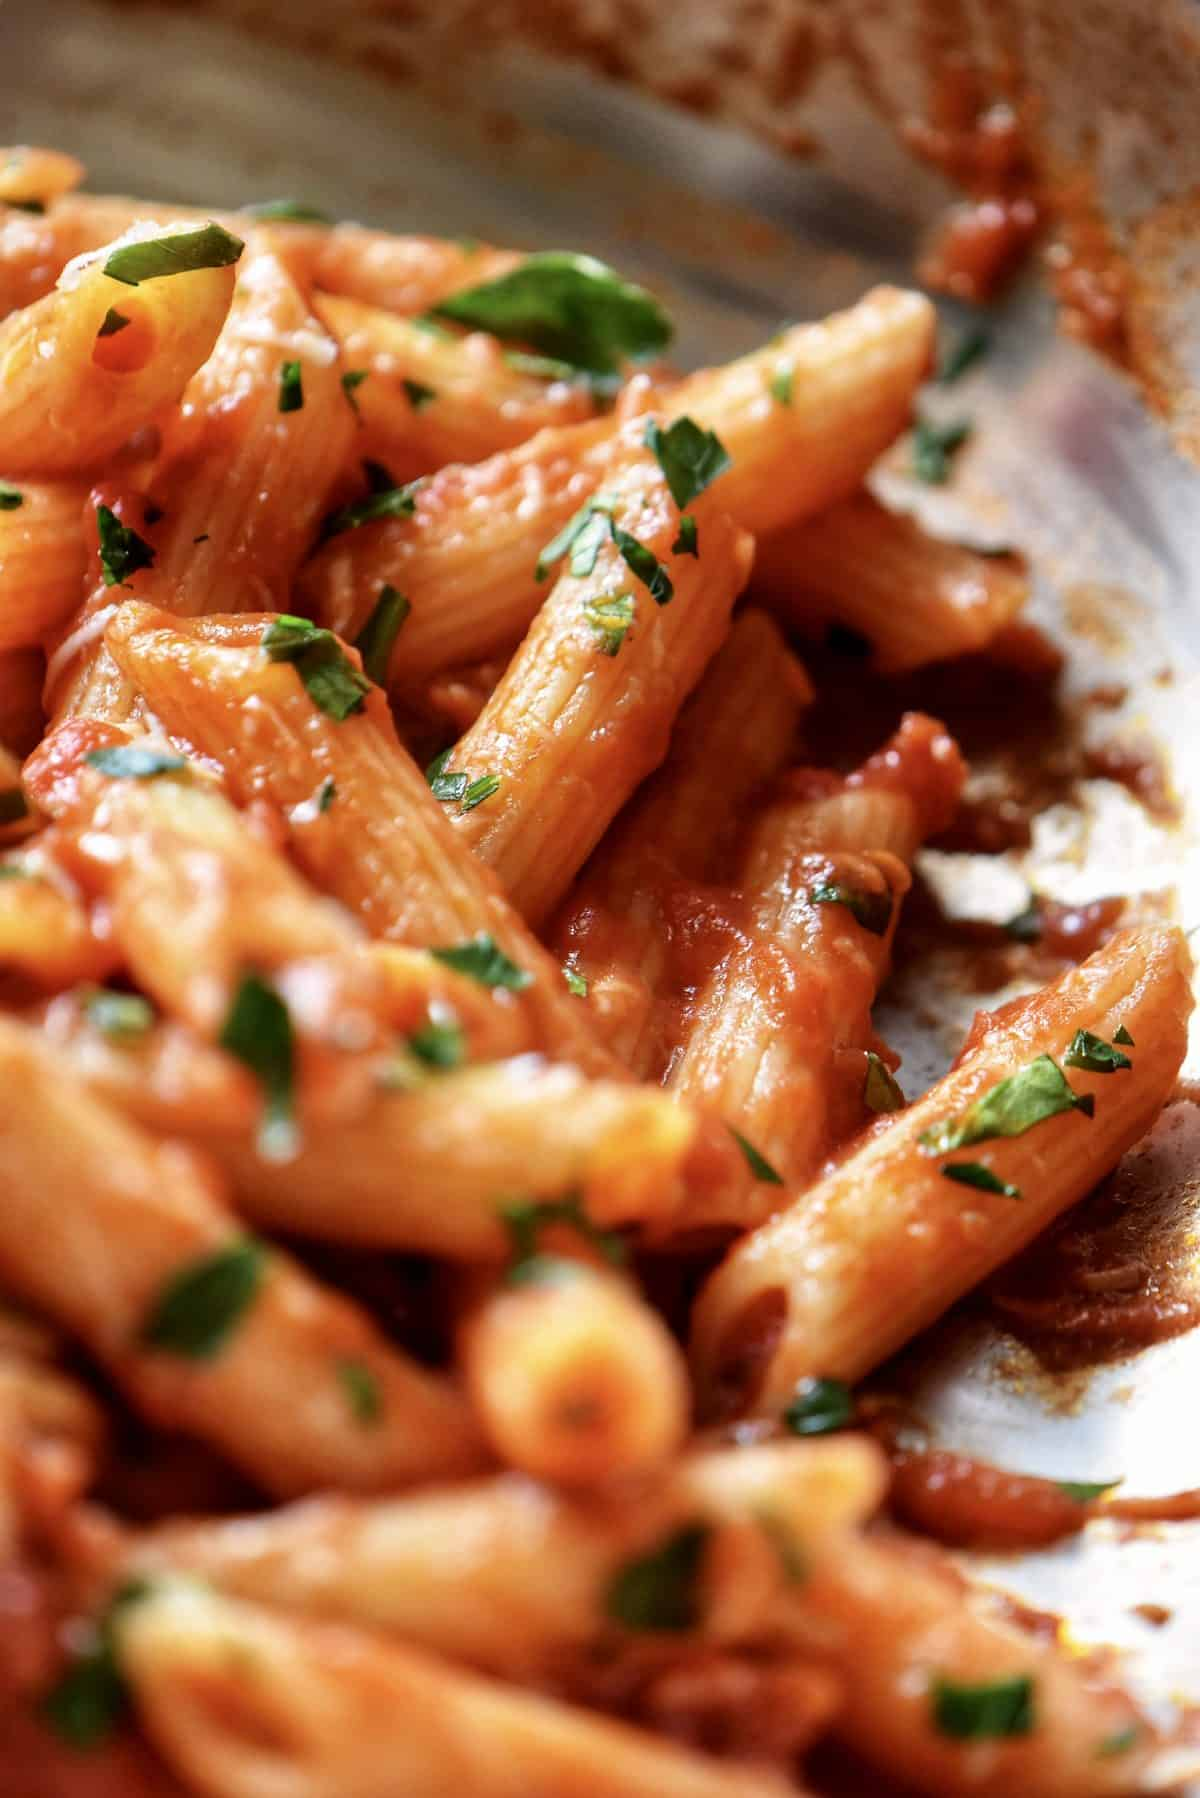 Spicy Penne all'Arrabbiata  in a pan garnished with chopped parsley.